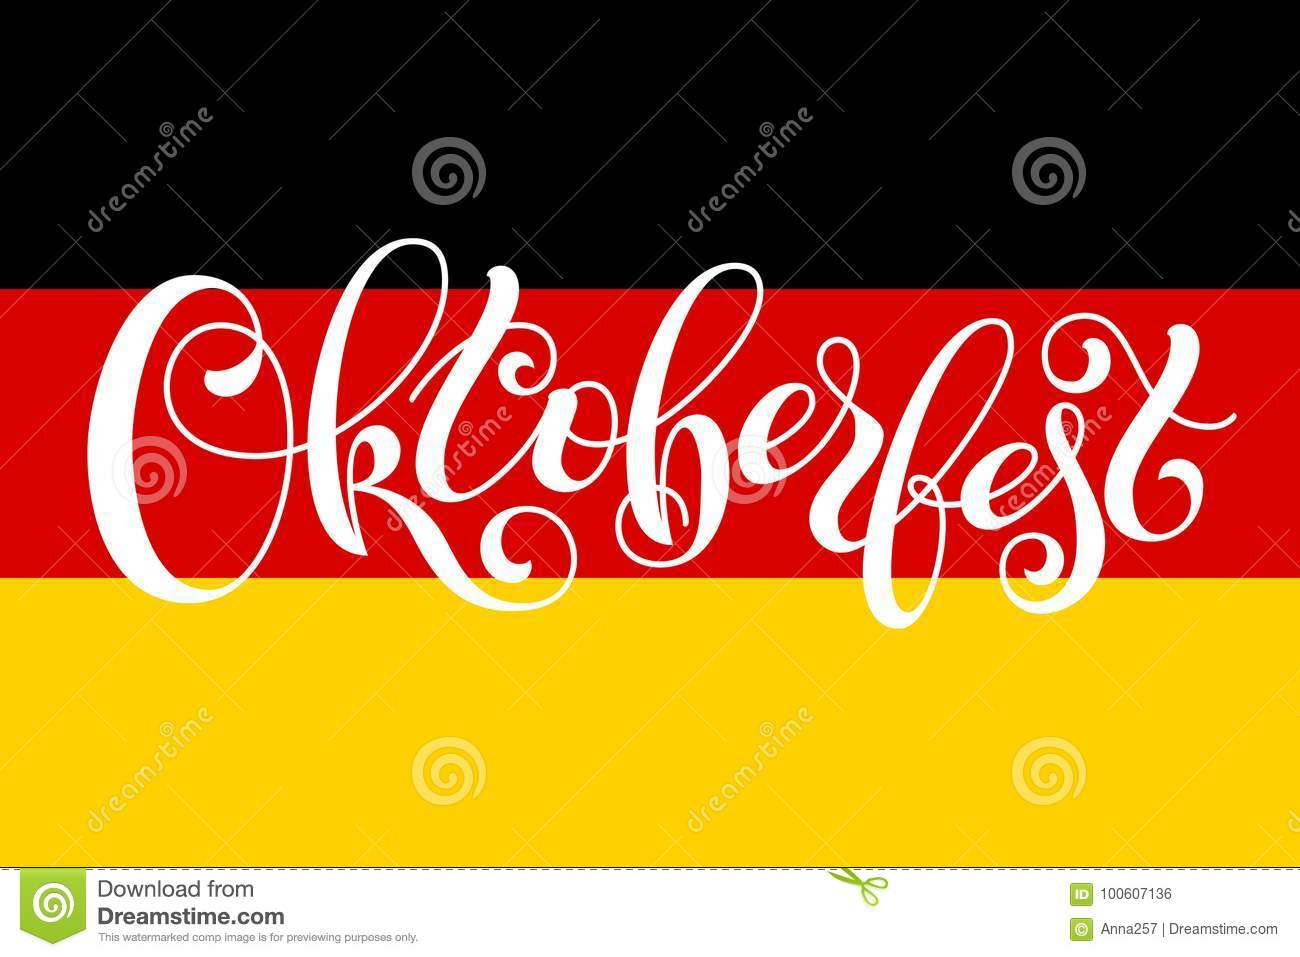 Oktoberfest letterin on germany flag template for a business card download oktoberfest letterin on germany flag template for a business card banner poster reheart Images